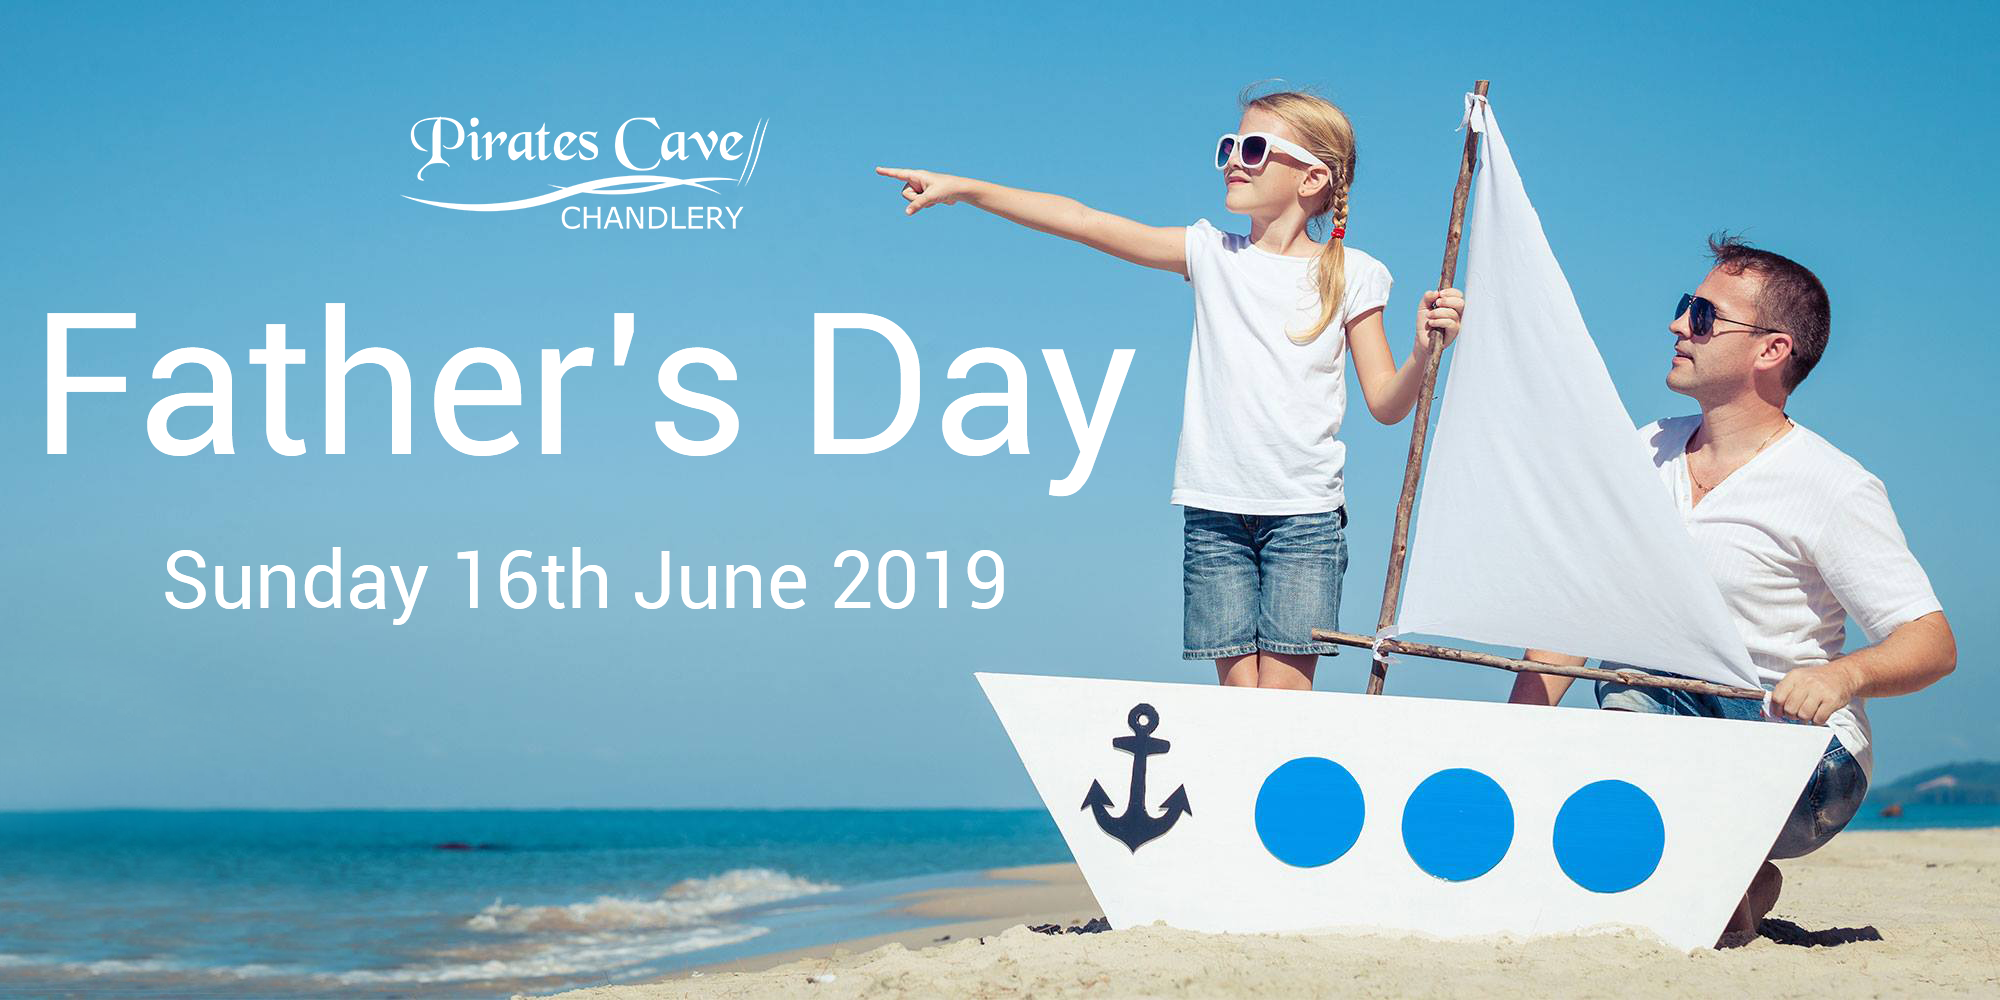 View all Fathers Day Gifts from Pirates Cave Chandlery